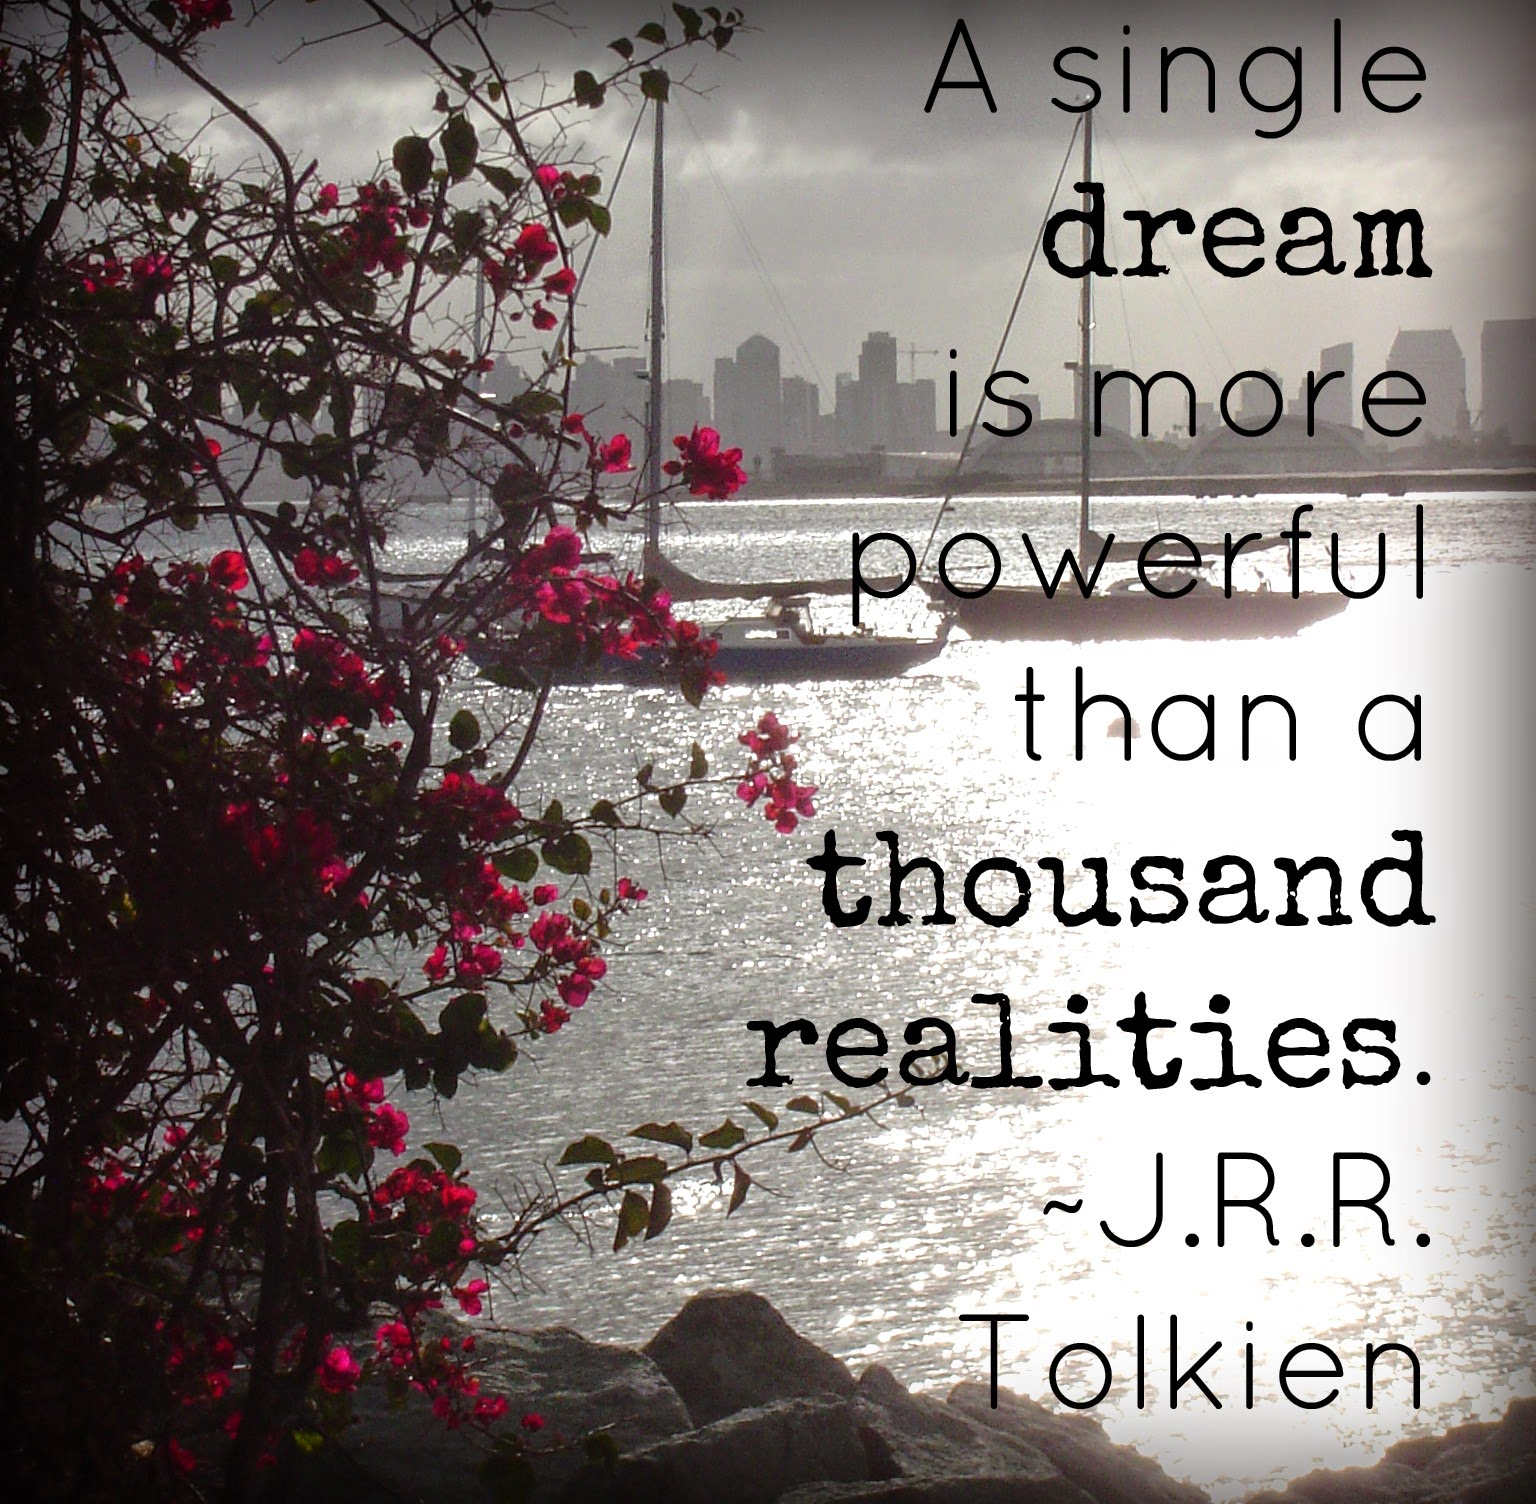 dream quote pic tolkien